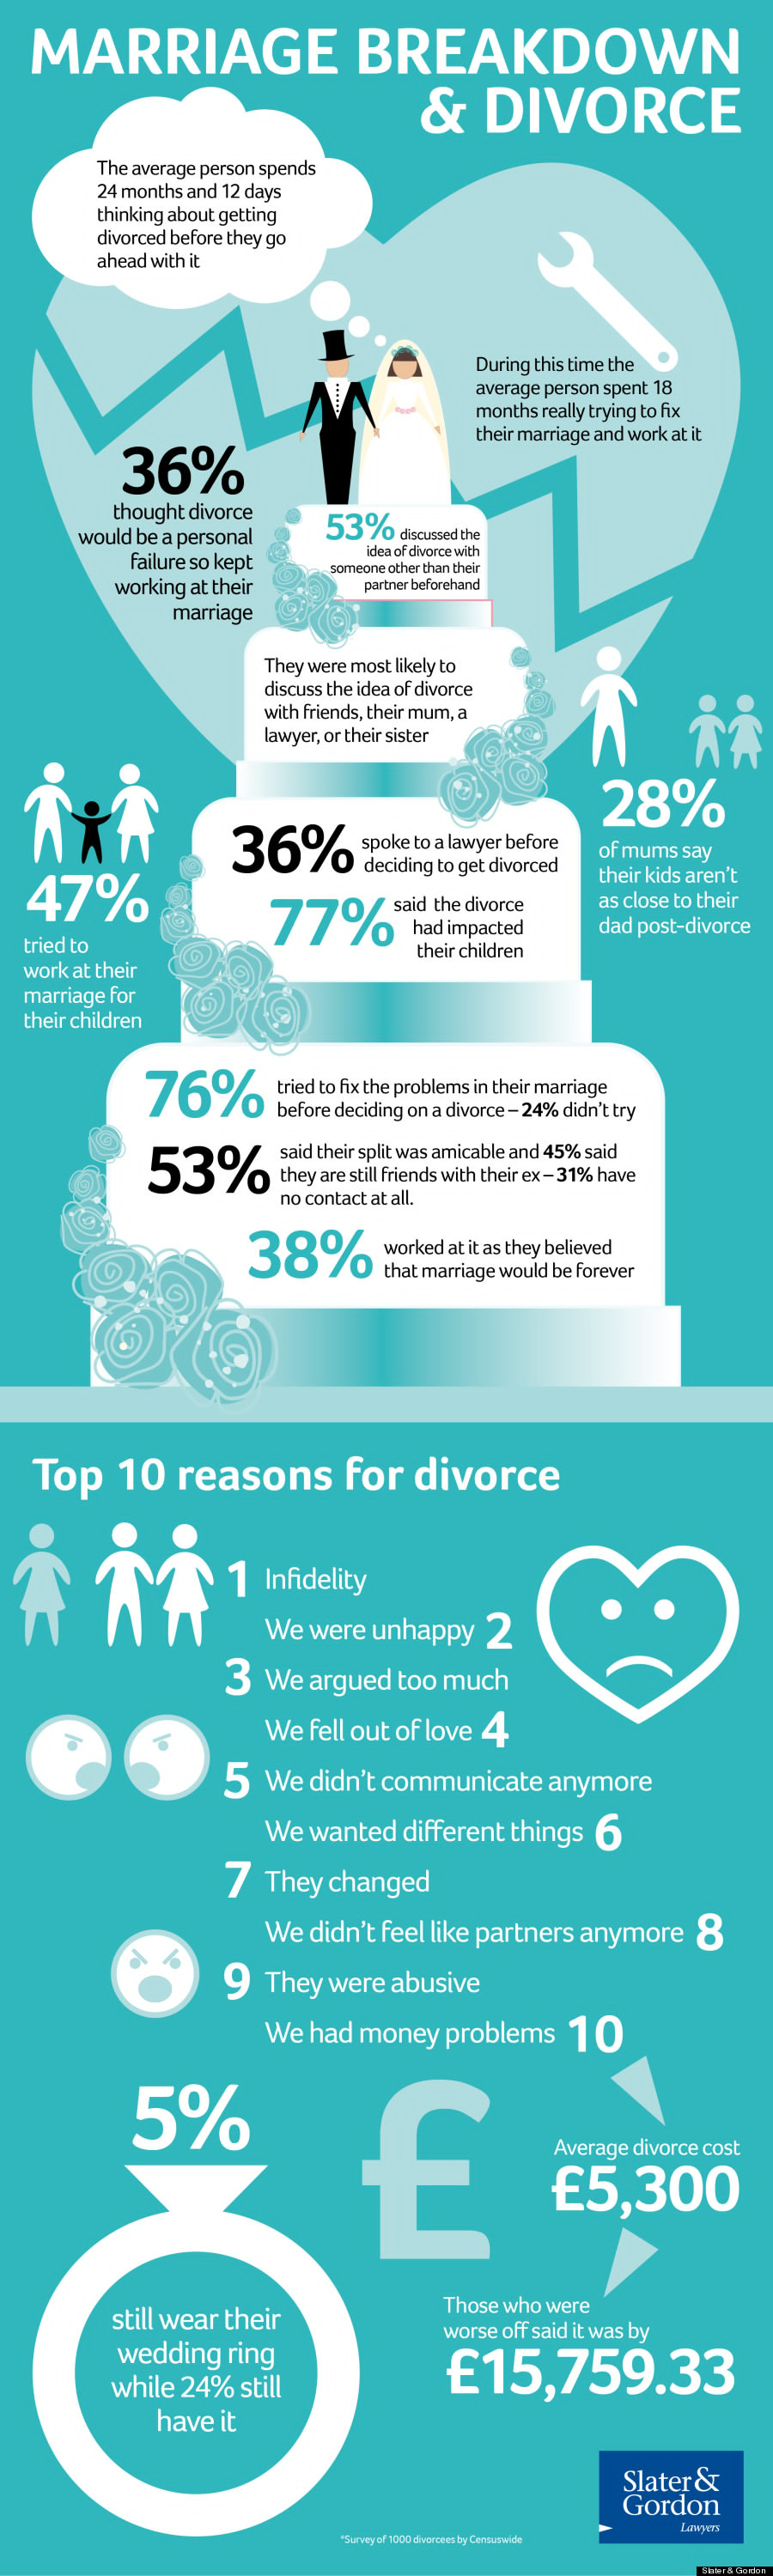 o-DIVORCE-INFOGRAPHIC-900